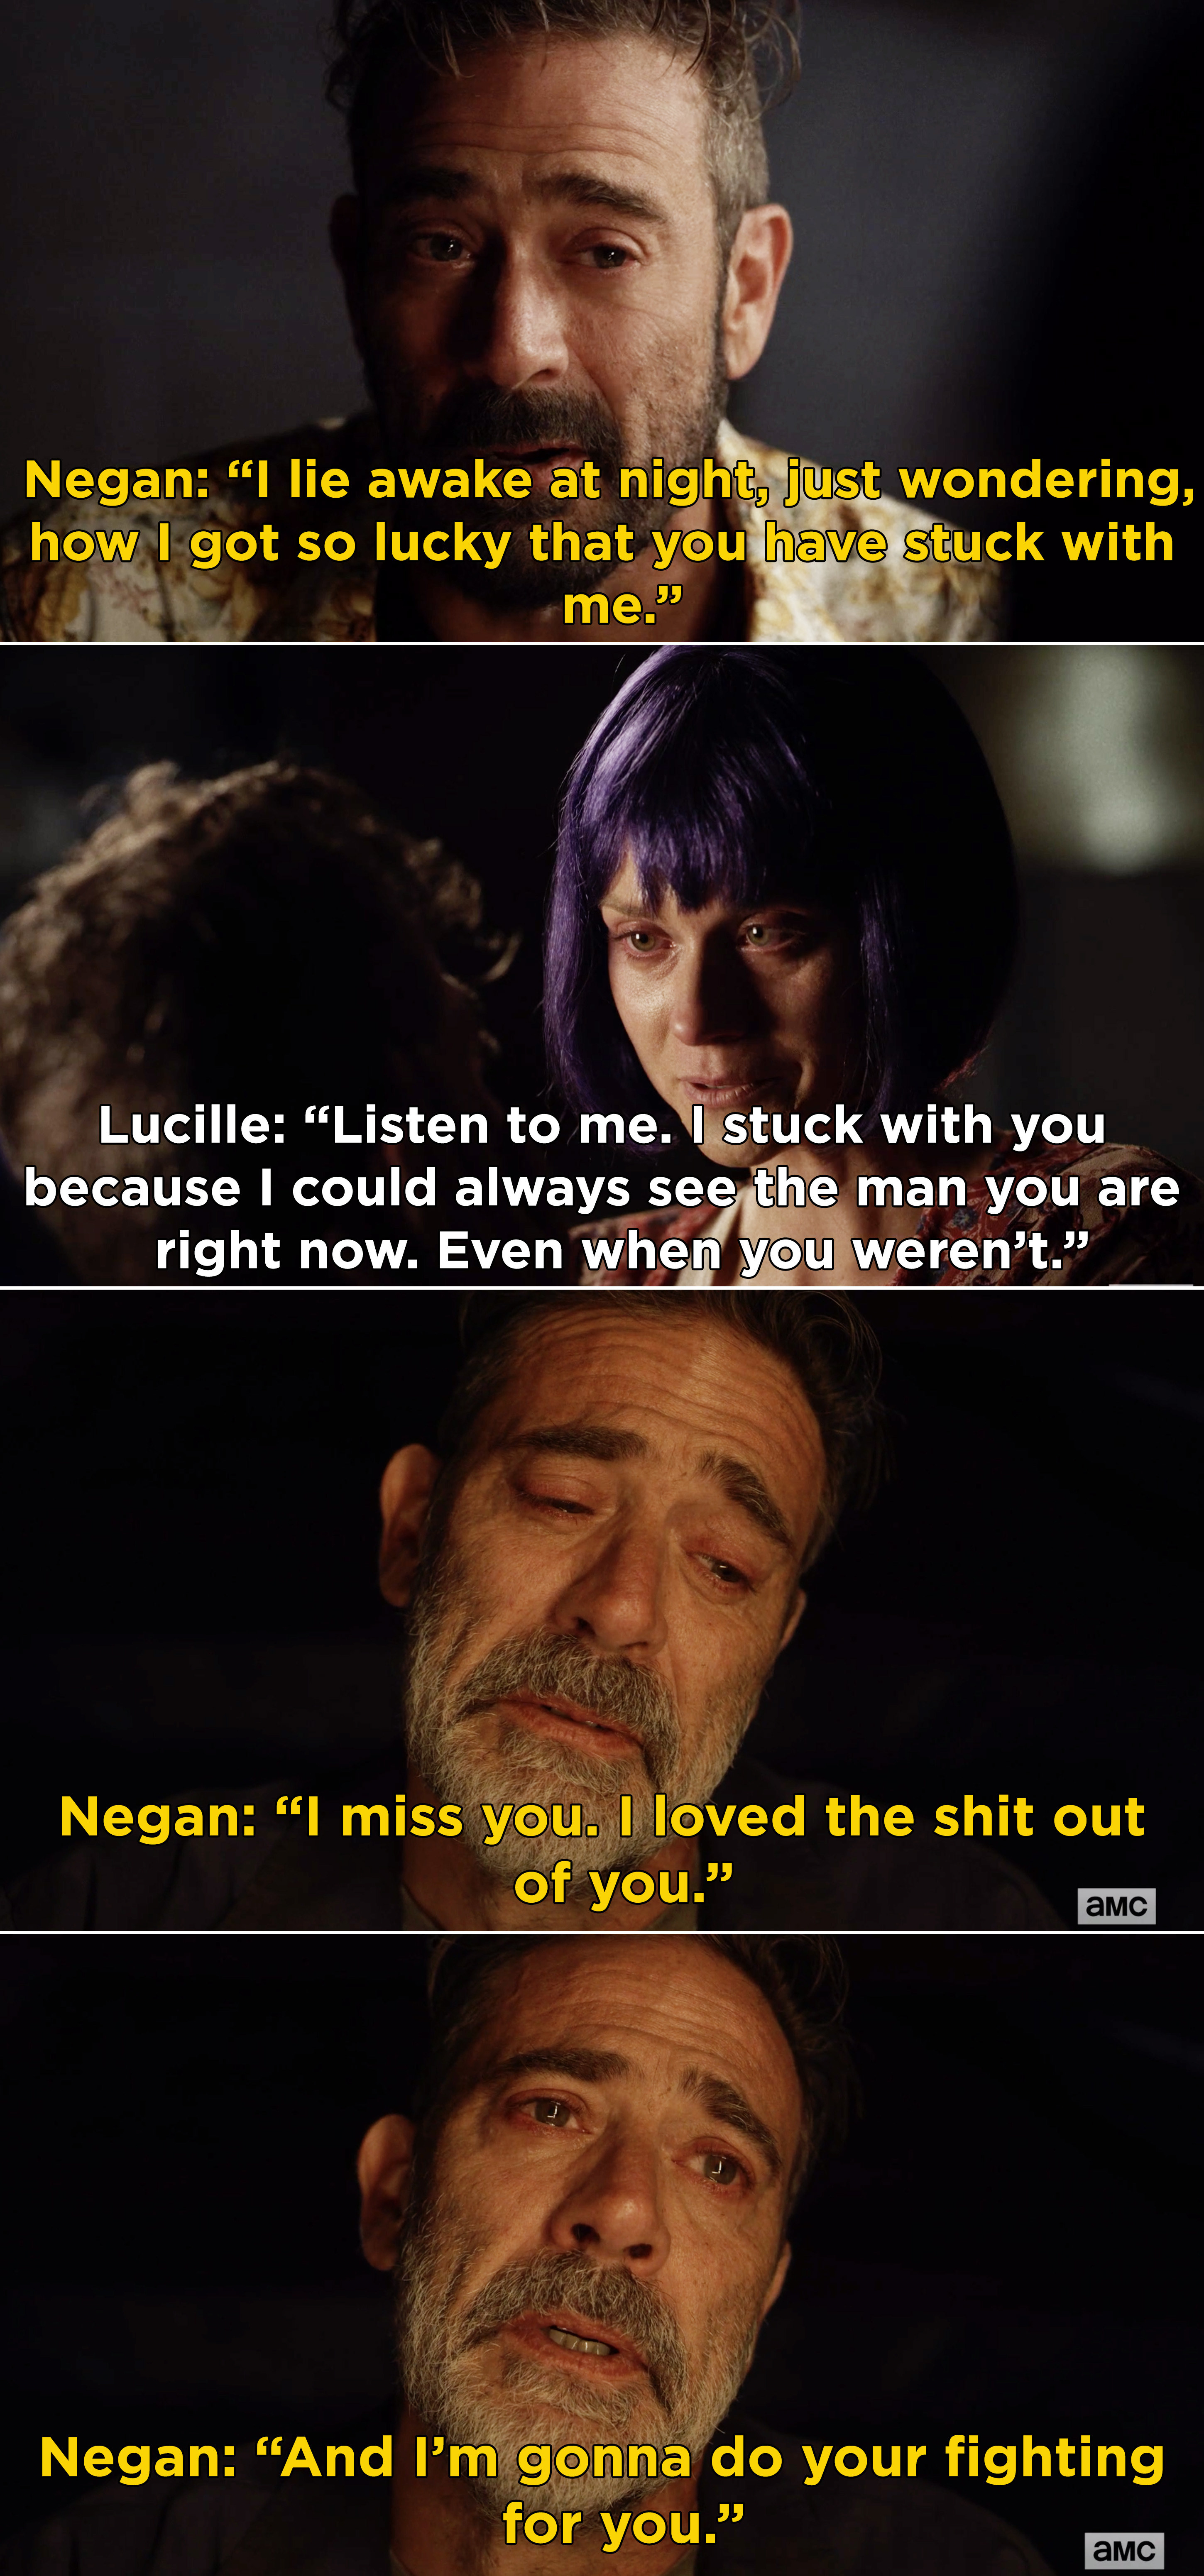 """Lucille telling Negan she stuck with him because she always saw """"the man you are right now"""" and Negan saying that he's going to fight for her"""